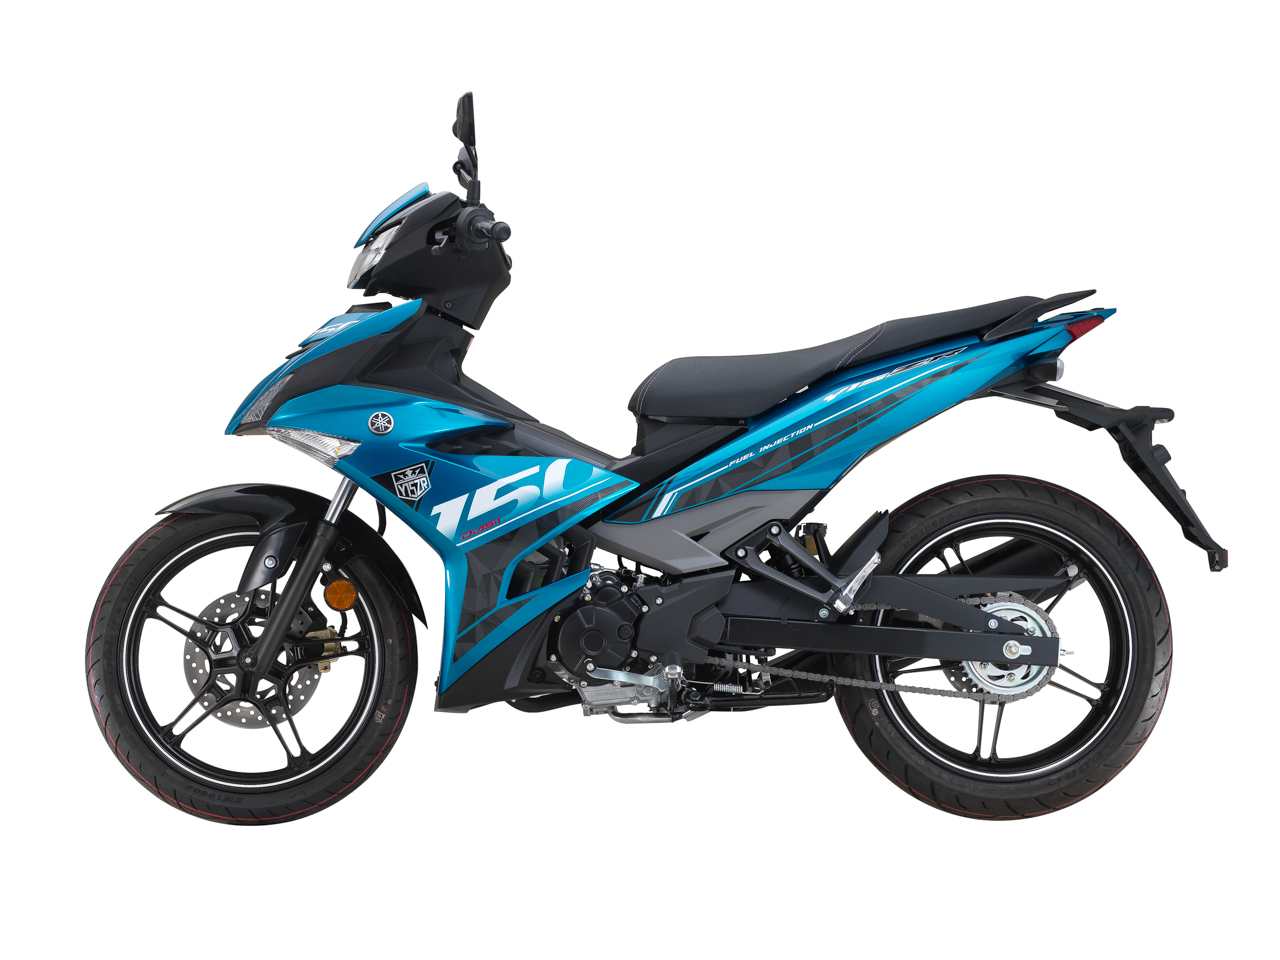 2019 Yamaha Y15ZR v2 Price Revealed from RM 8,168